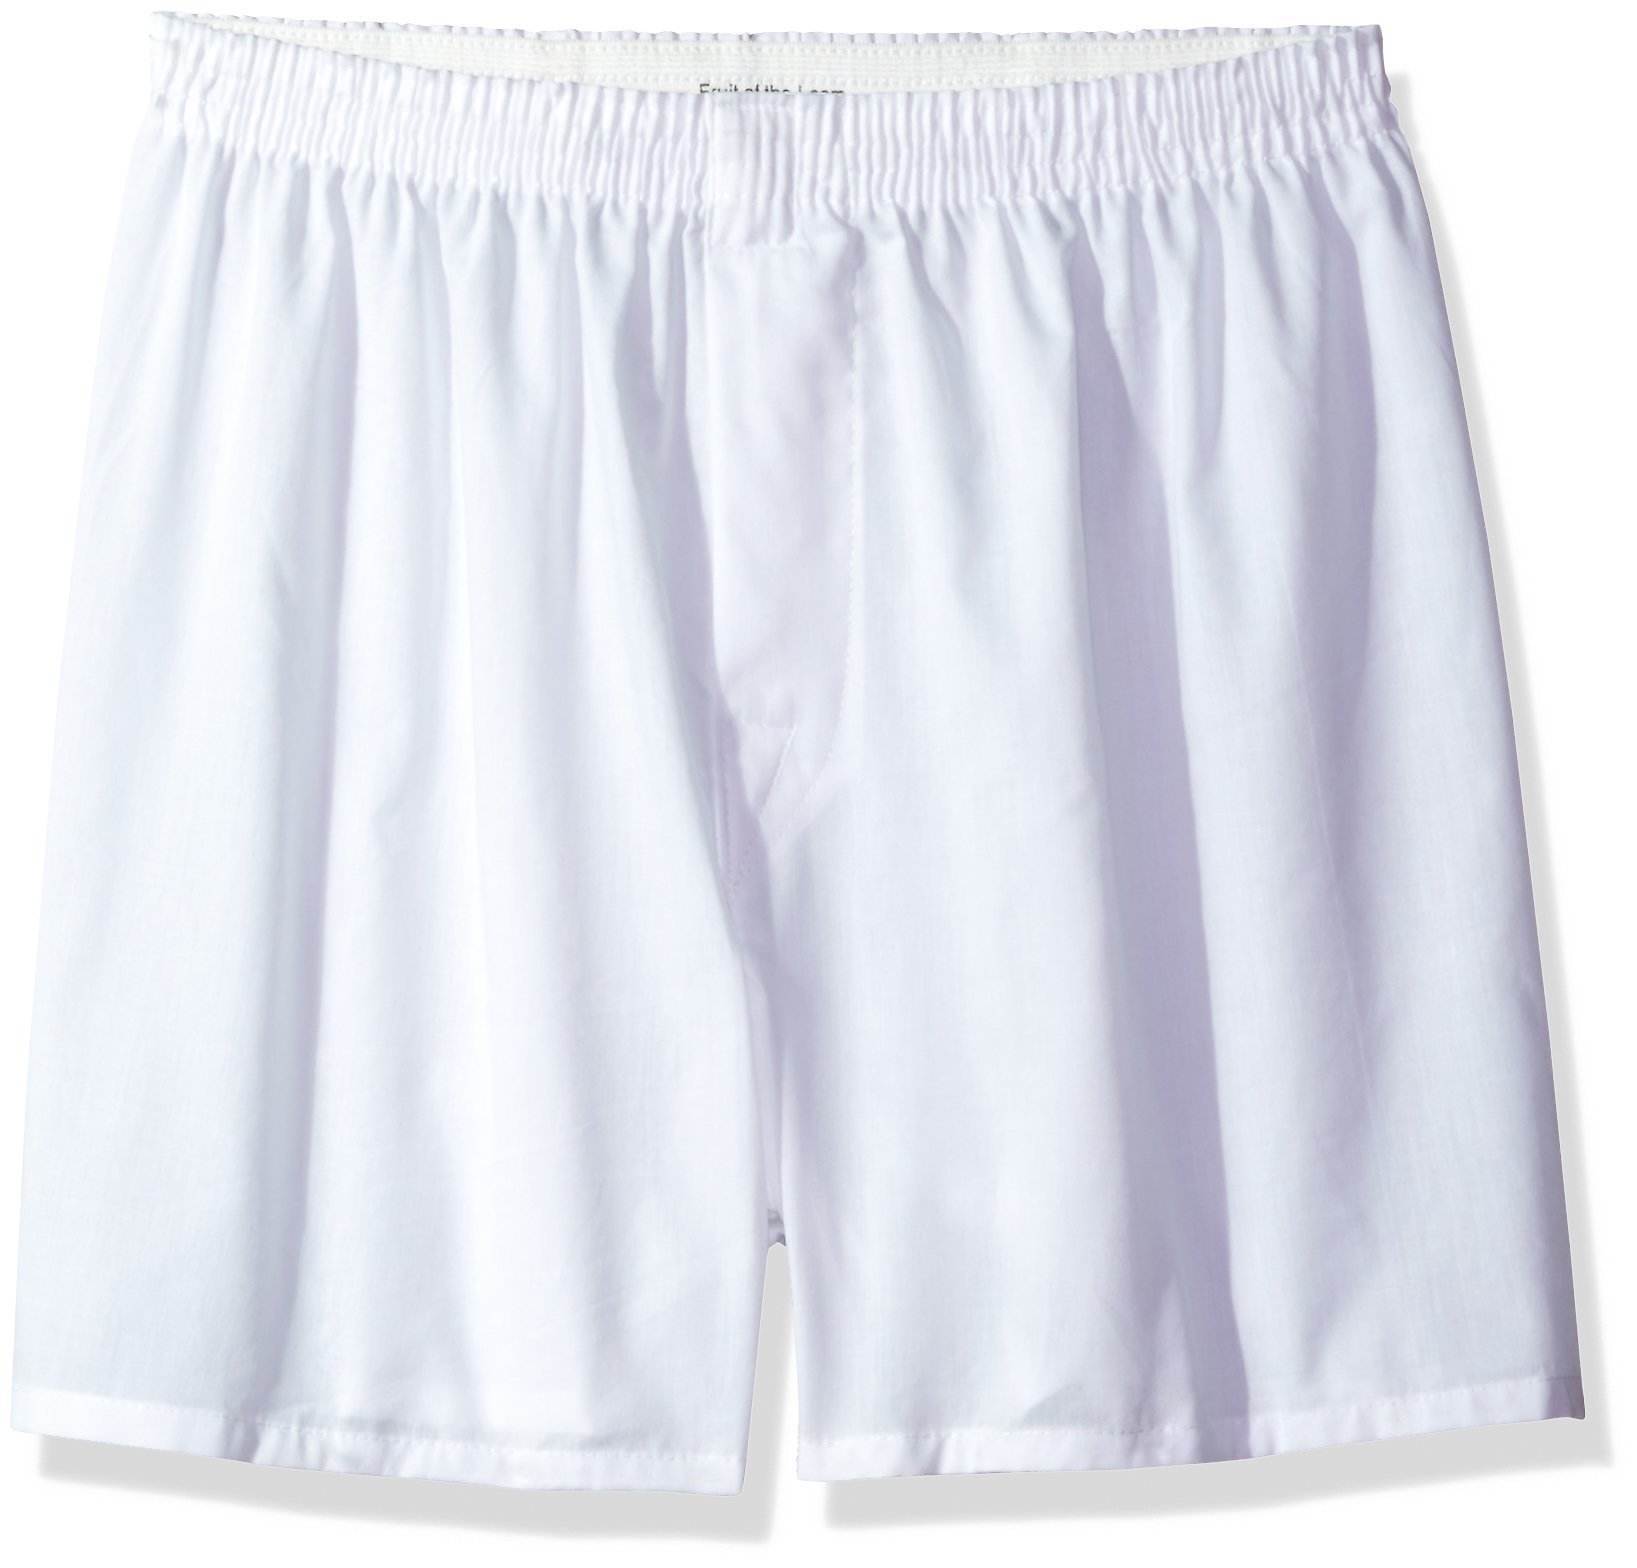 Fruit of the Loom Men's Woven Tartan and Plaid Boxer Multipack, White (5 Pack), XX-Large